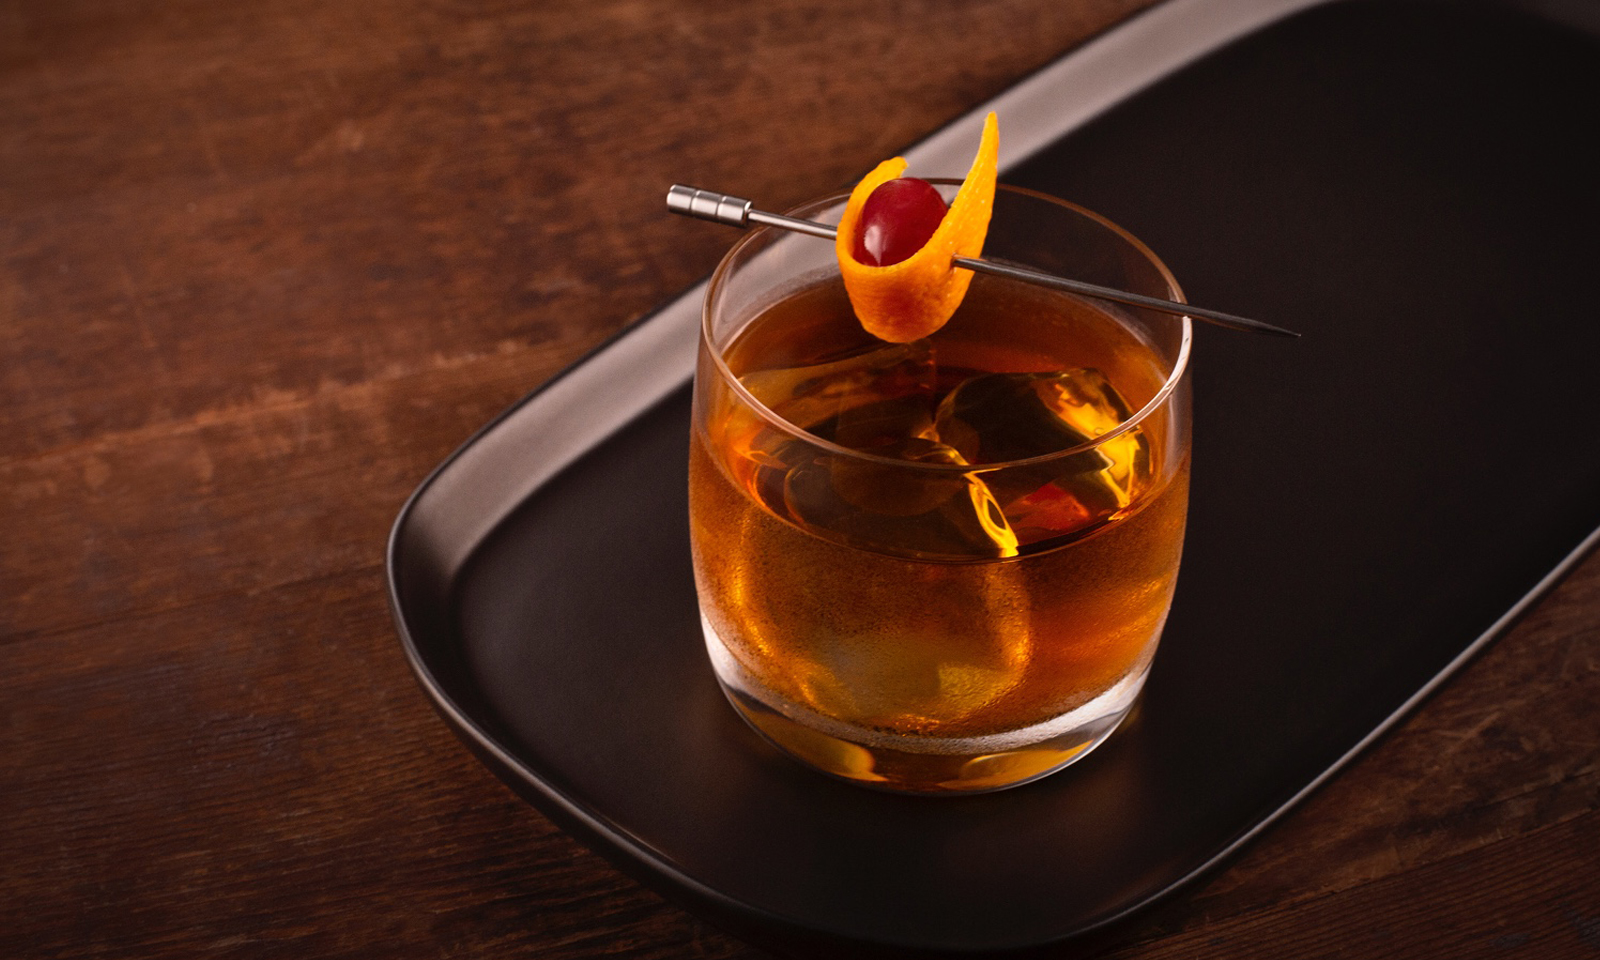 Bushmills Black Fashioned Irish Whiskey Cocktail Recipe